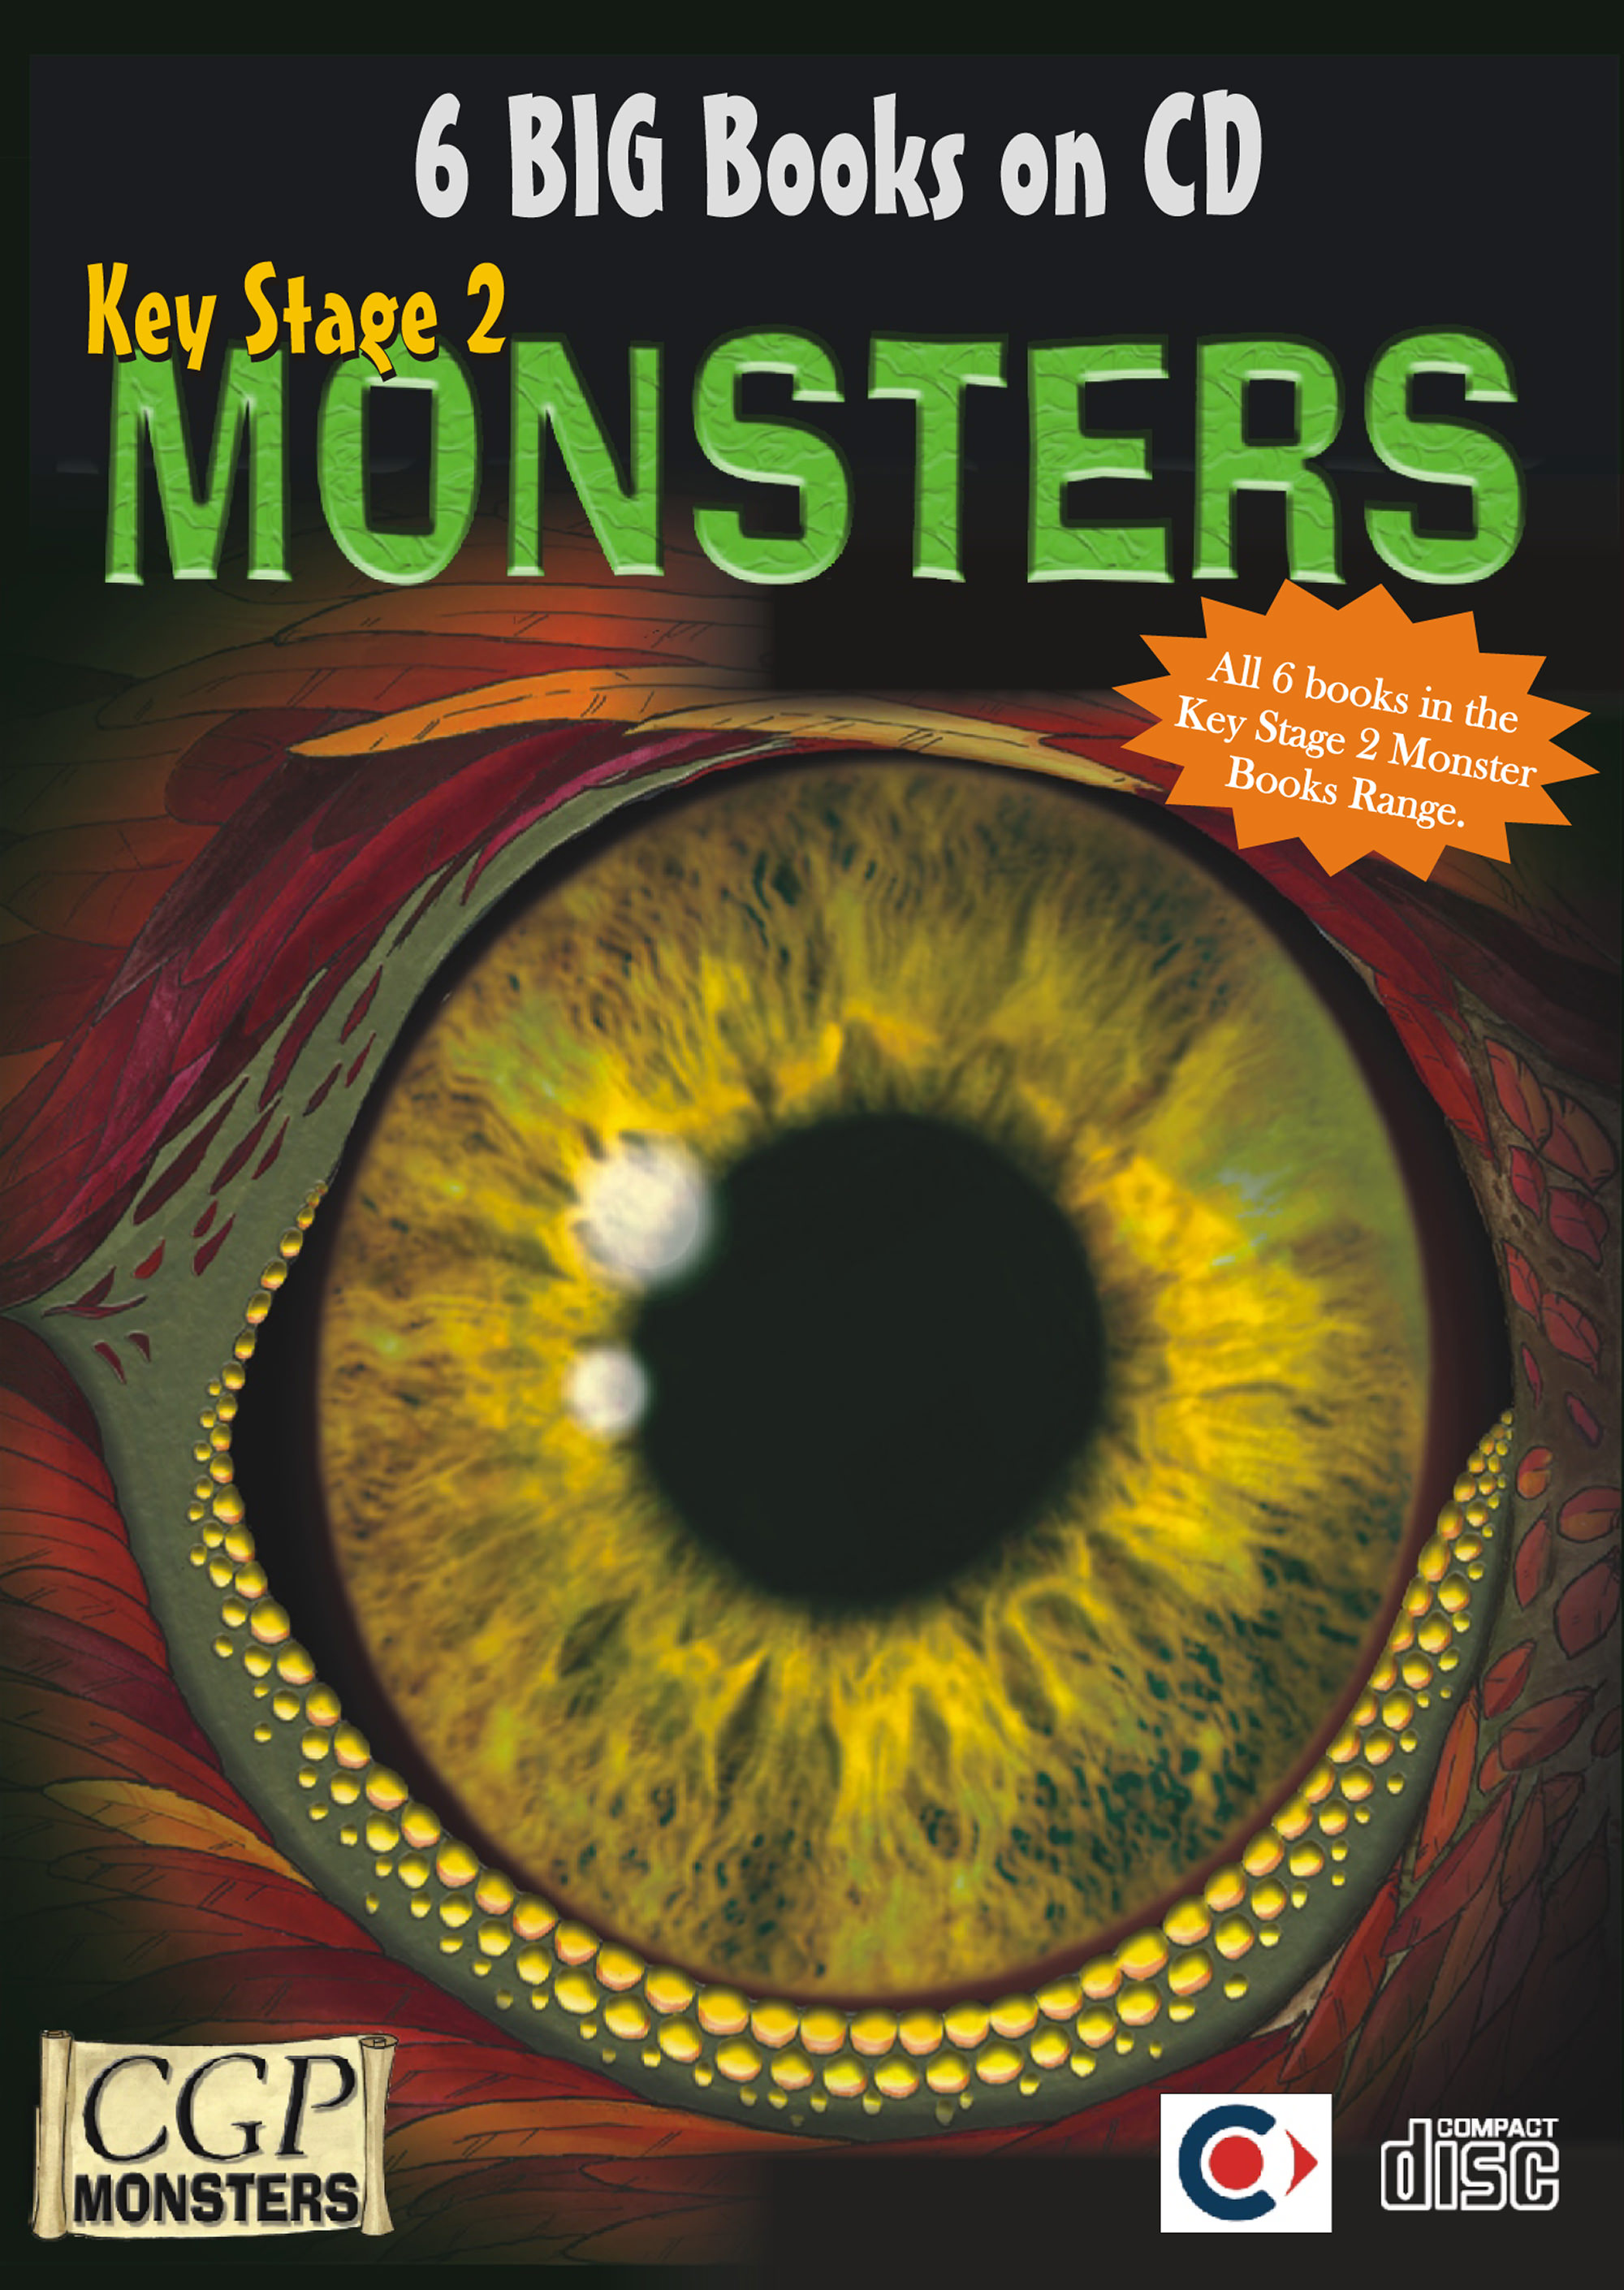 RCM21 - KS2 Monsters CDROM